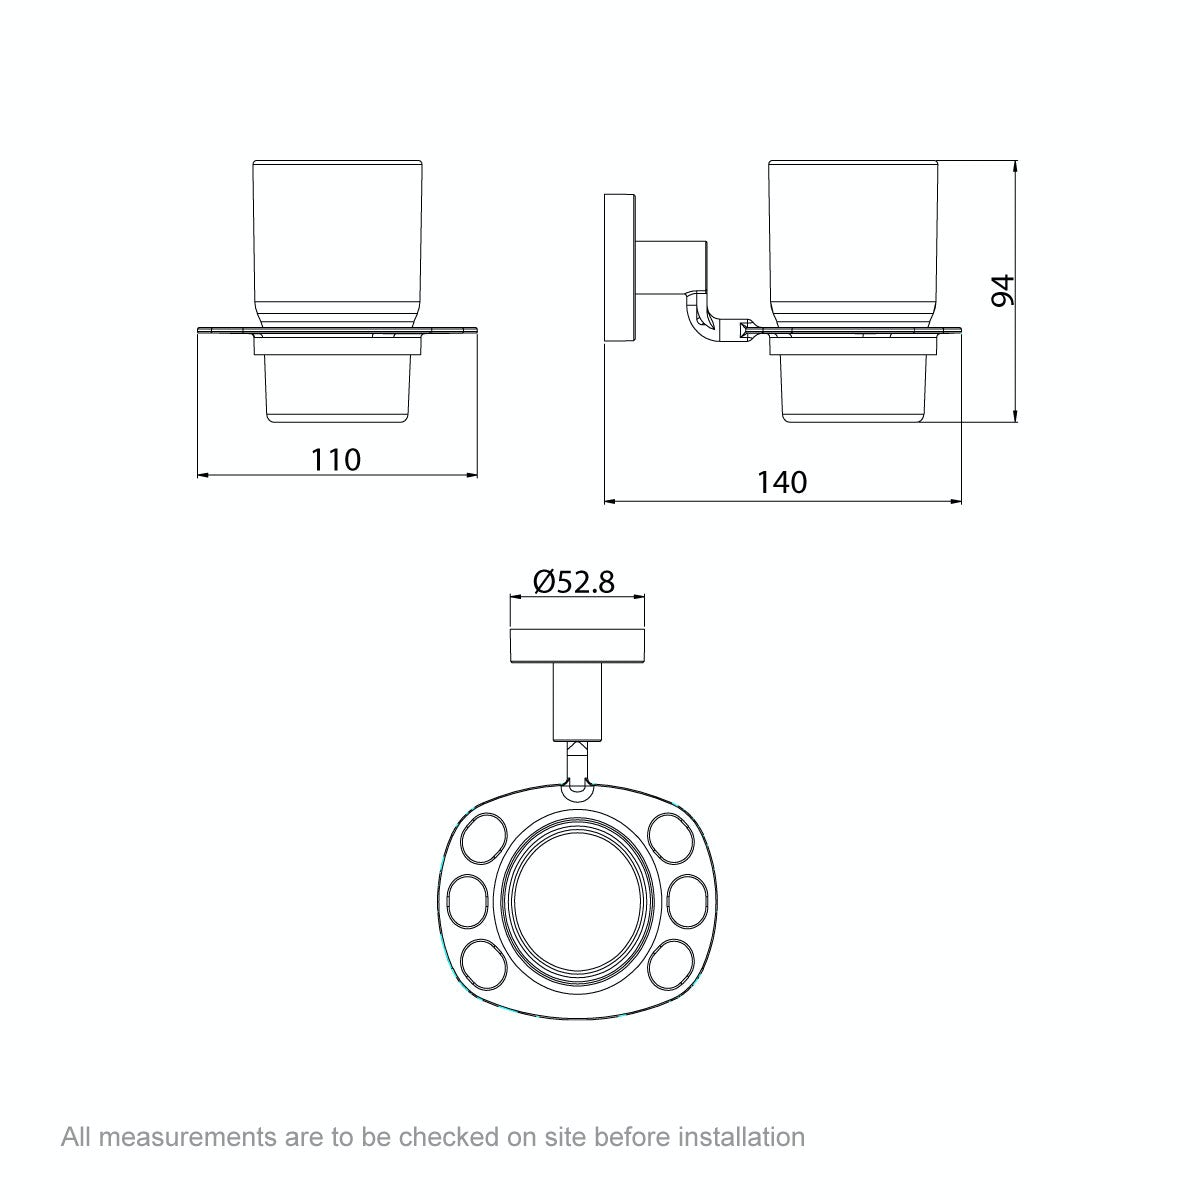 Dimensions for Orchard Lunar tumbler and toothbrush holder